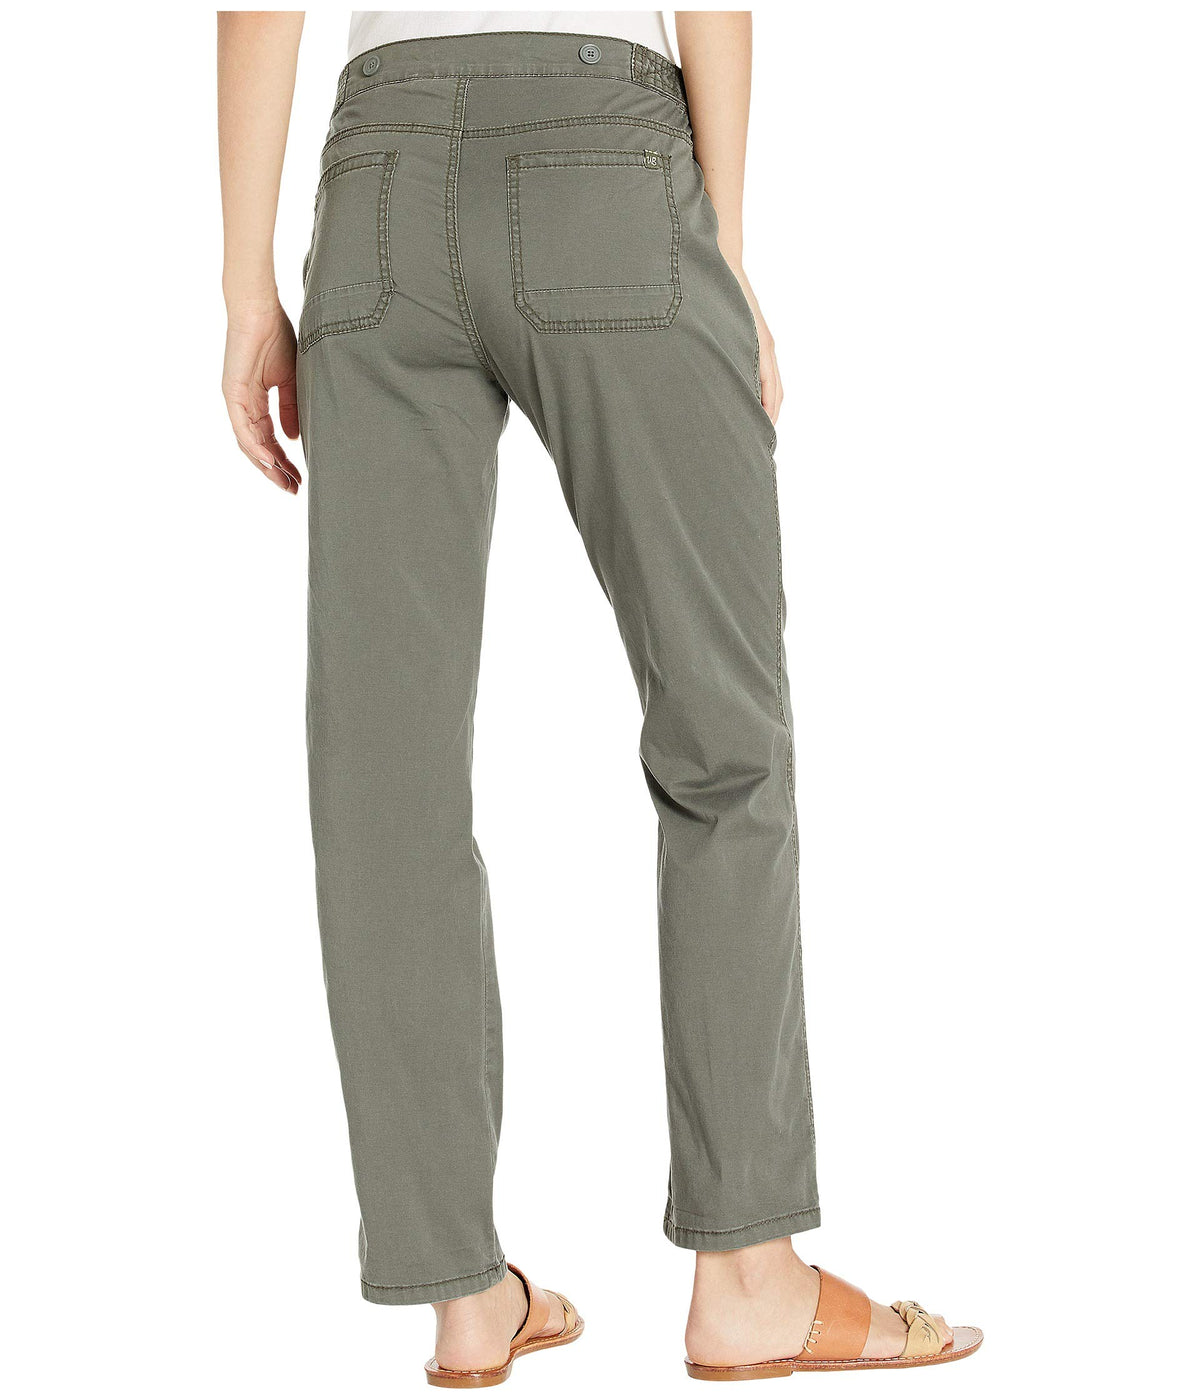 Alexi Slim Ankle Pants